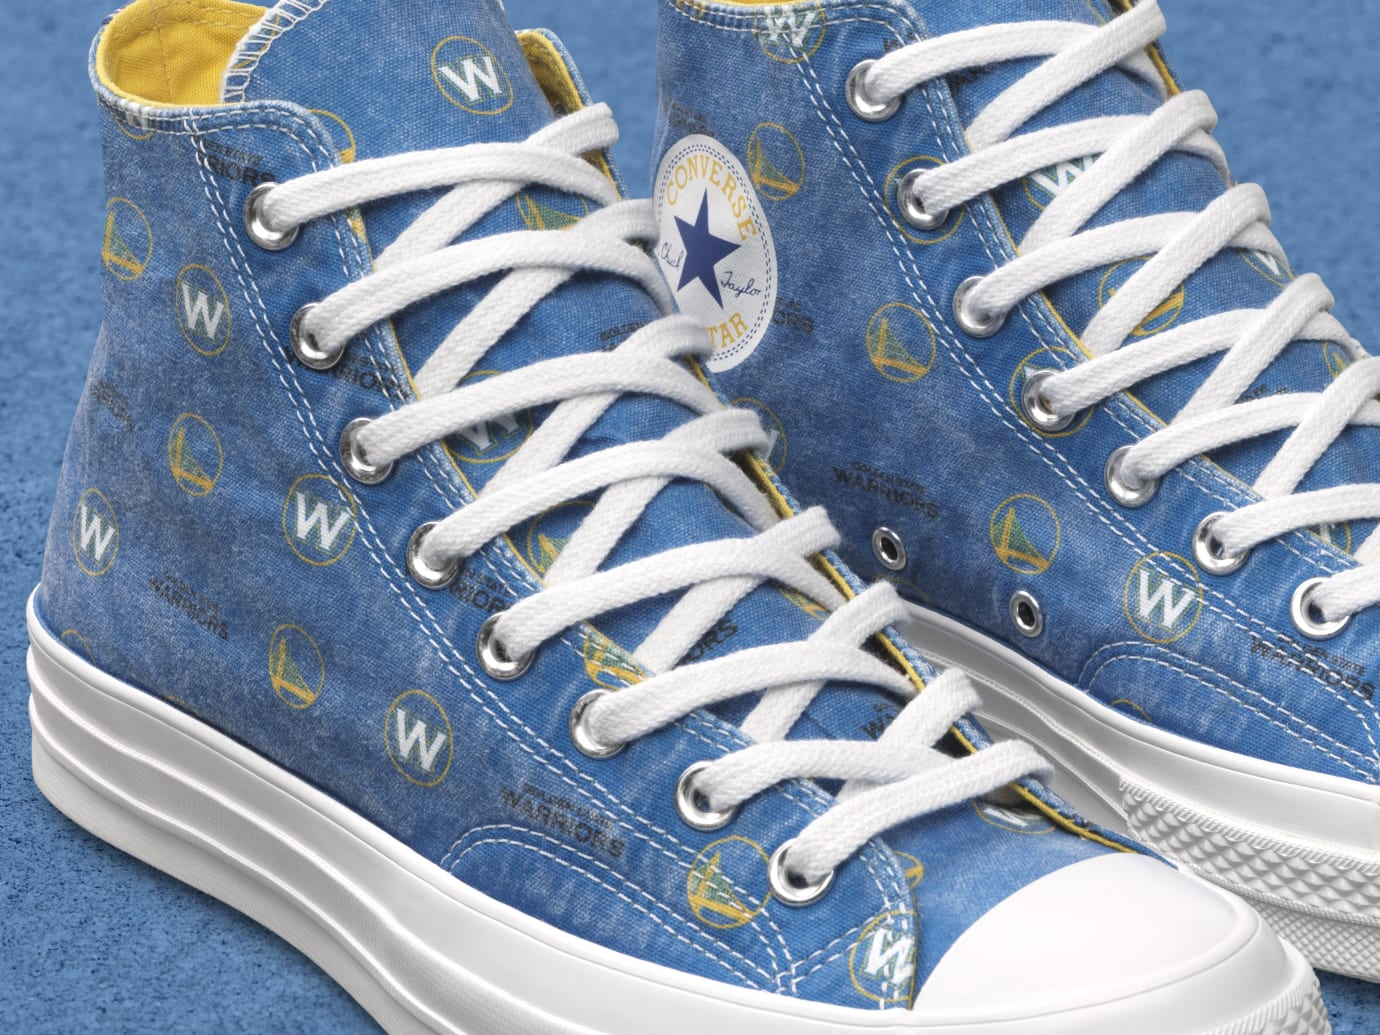 converse x nba city edition 'golden state warriors'